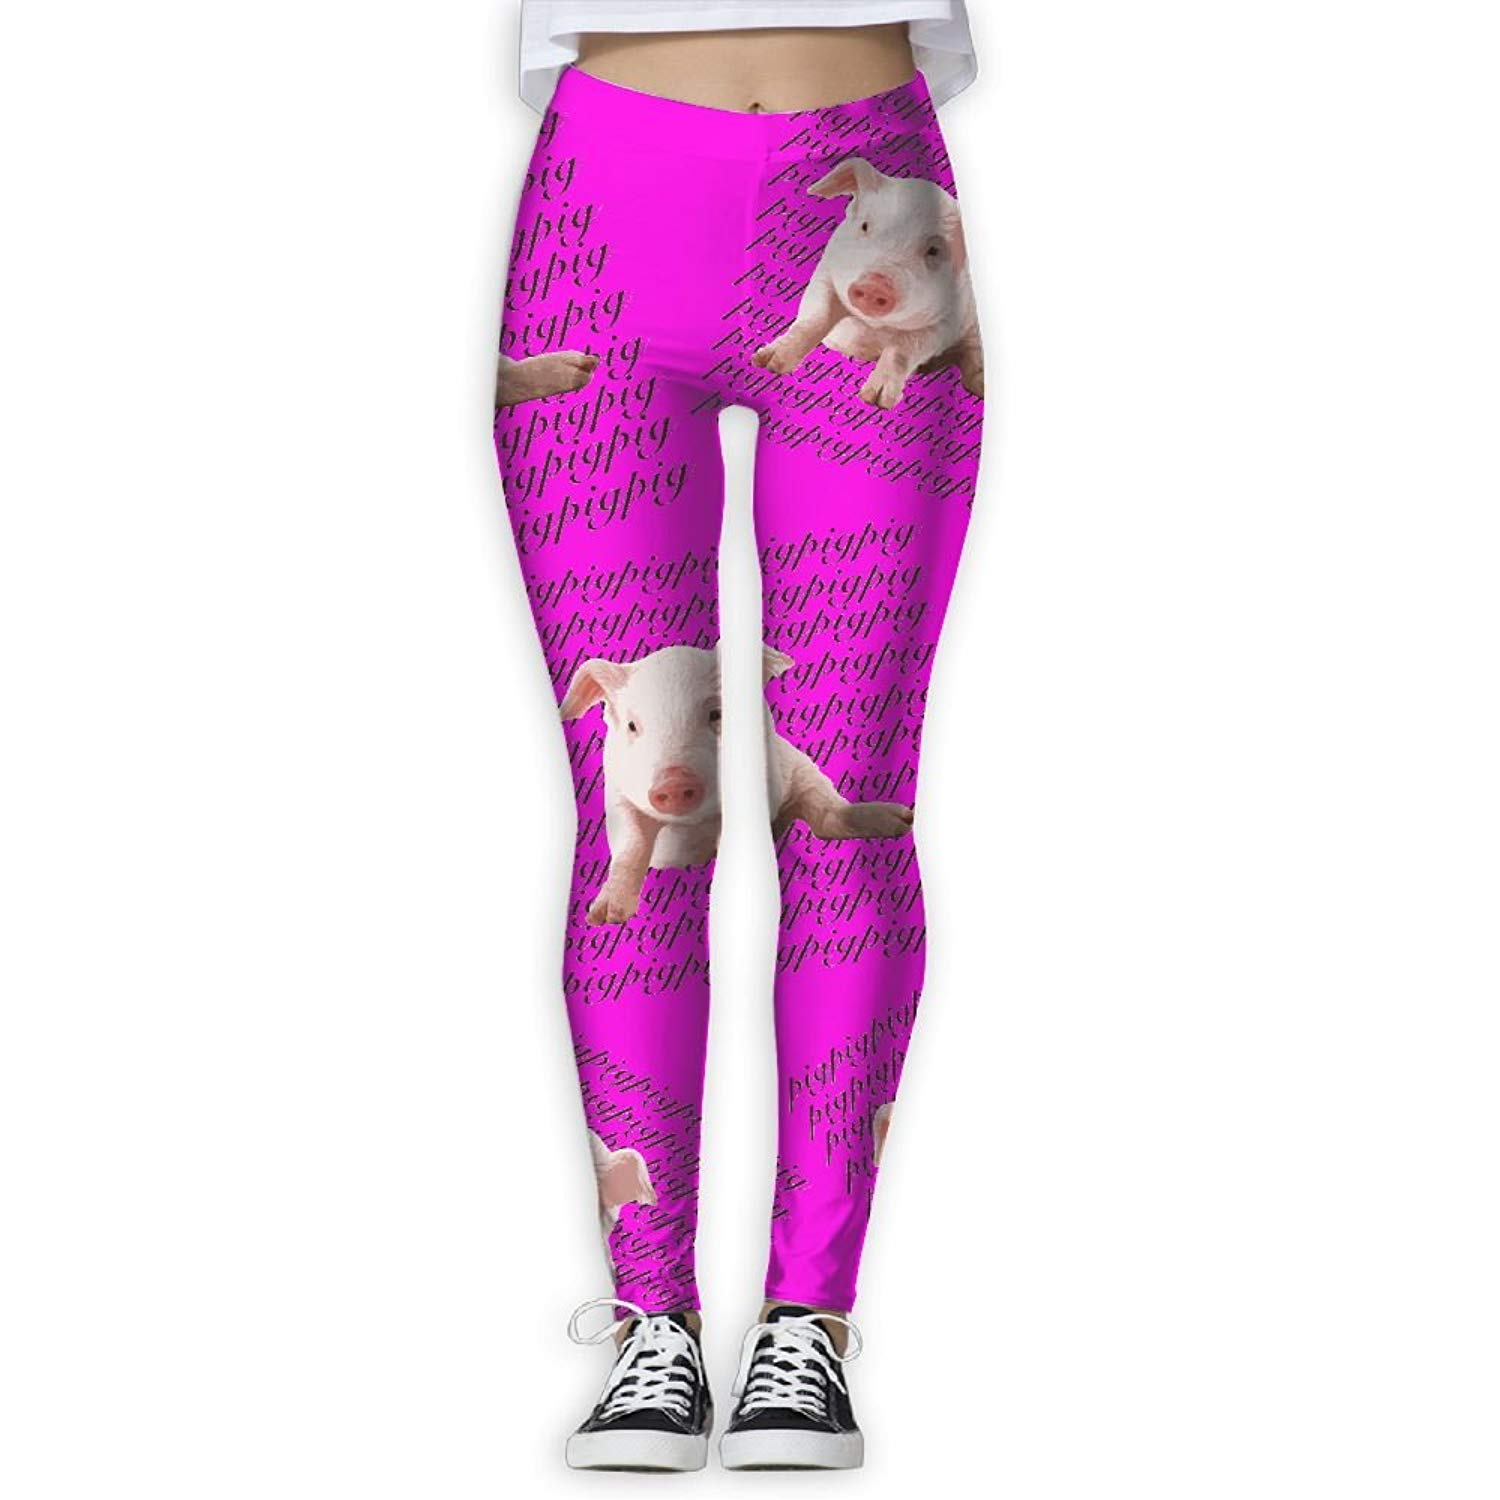 fc413a86c6892 Get Quotations · Pig Women High Waist Printed Yoga Pants Workout Running Yoga  Pants Sweatpants